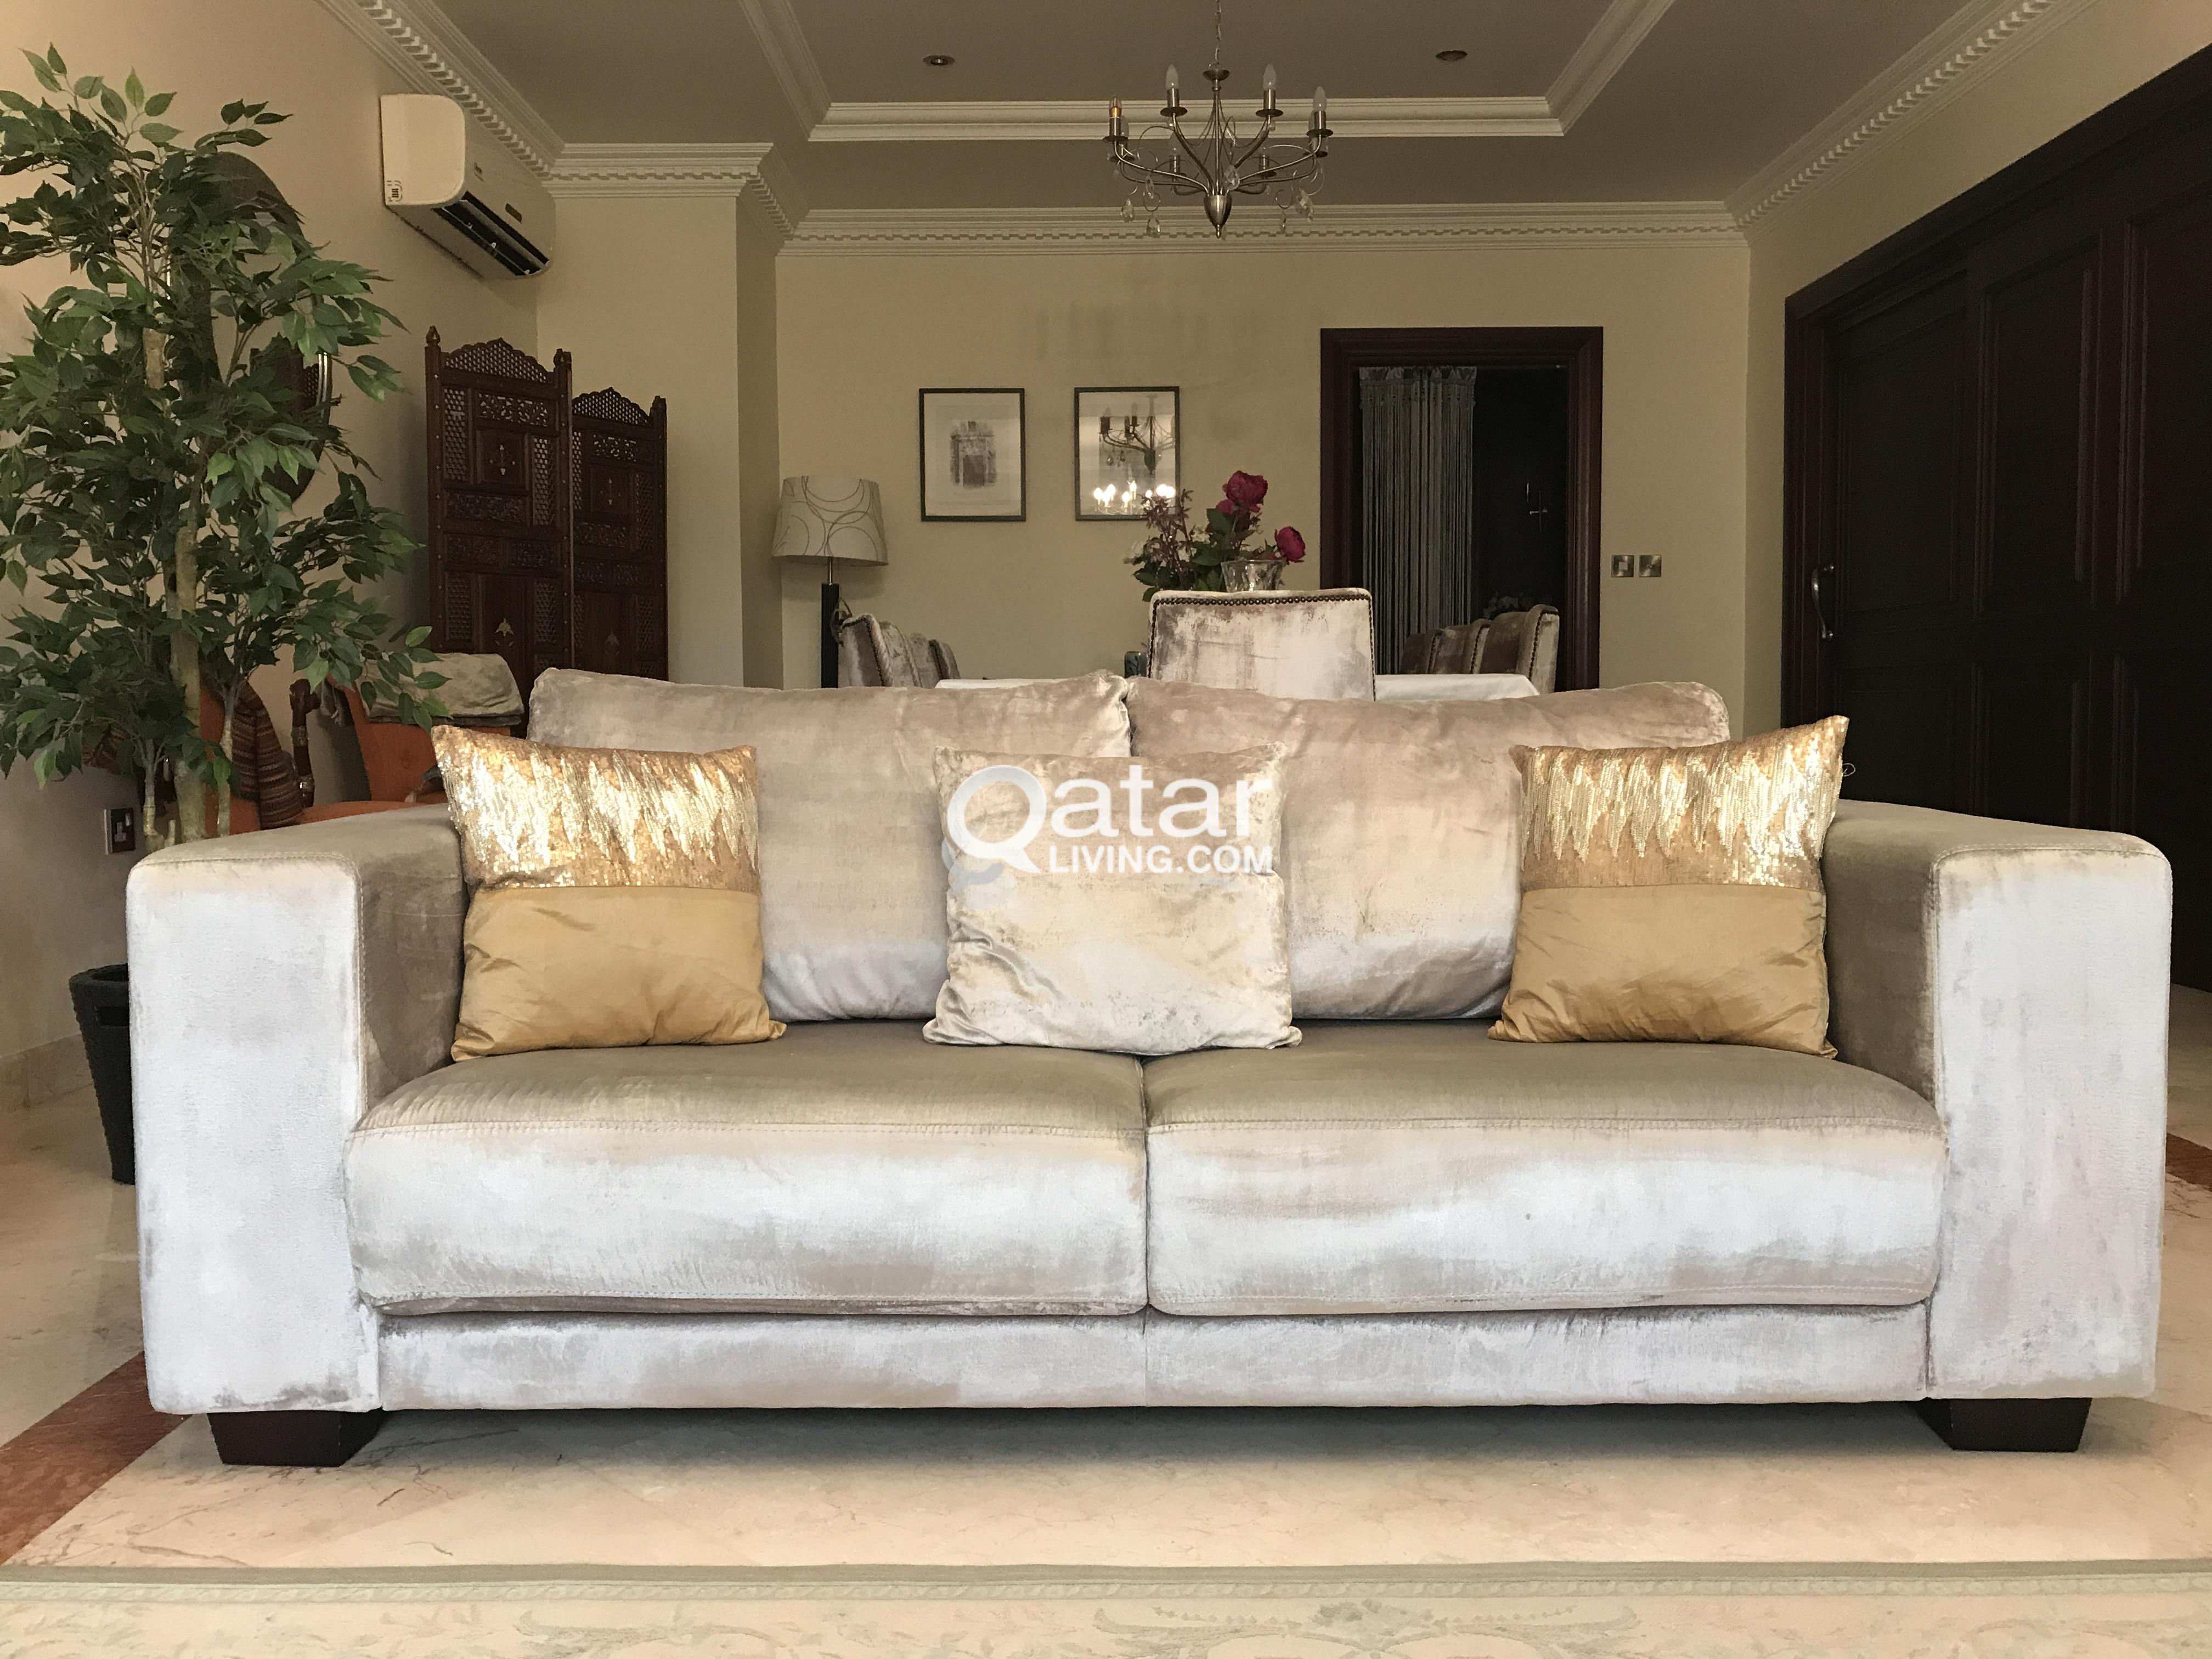 Sofa Set Price In Qatar The One Furniture 3 X Sofas 43 43 Qatar Living